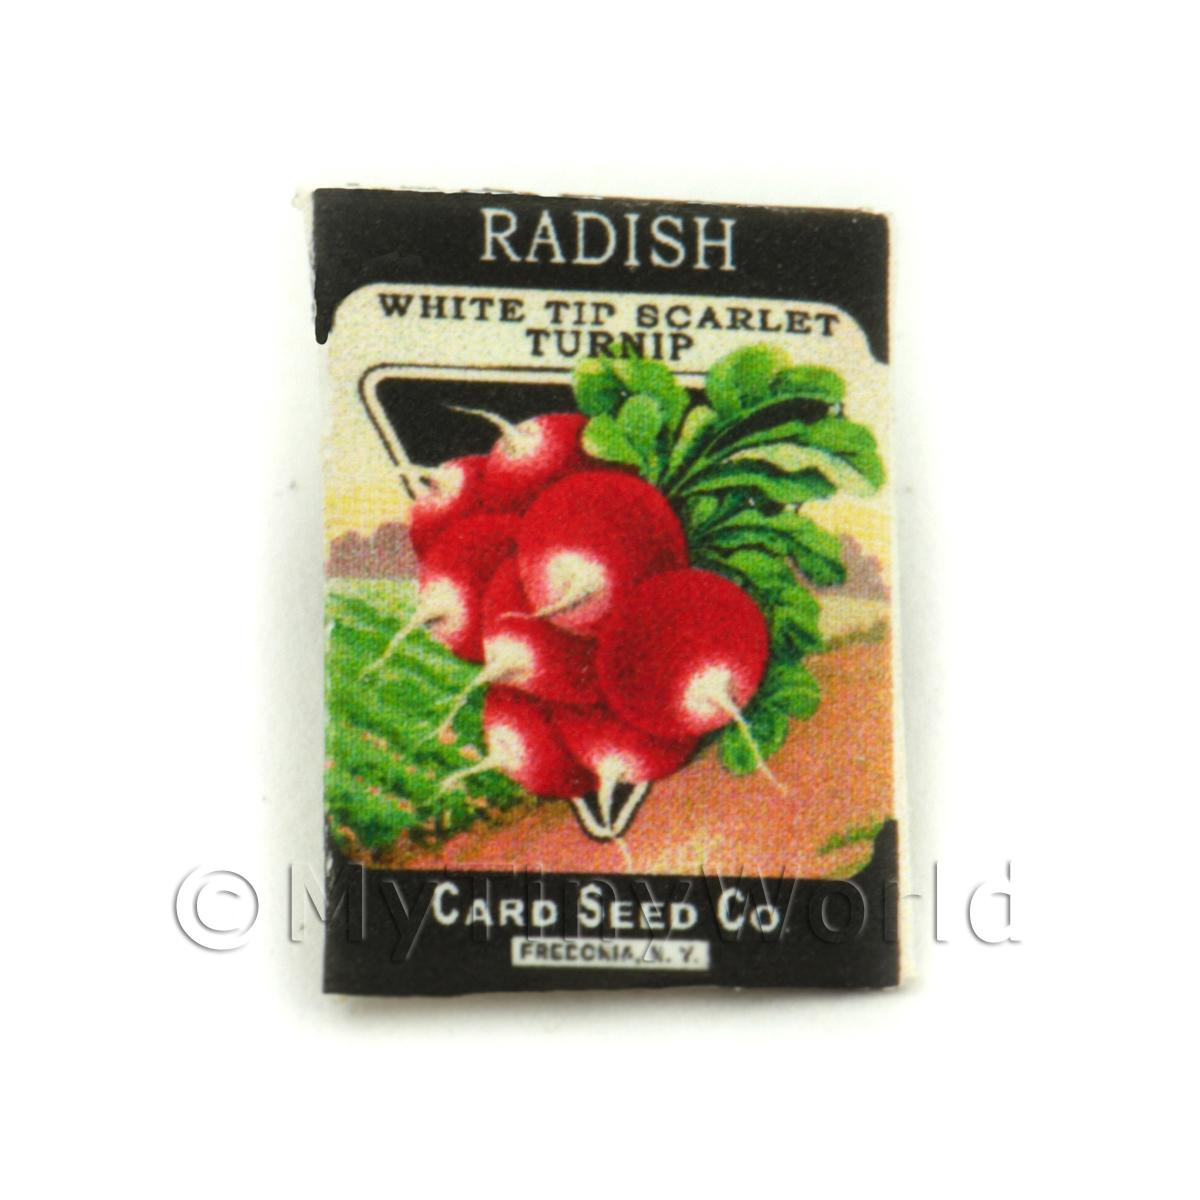 Dolls House Miniature Garden White Tip Radish Seed Packet